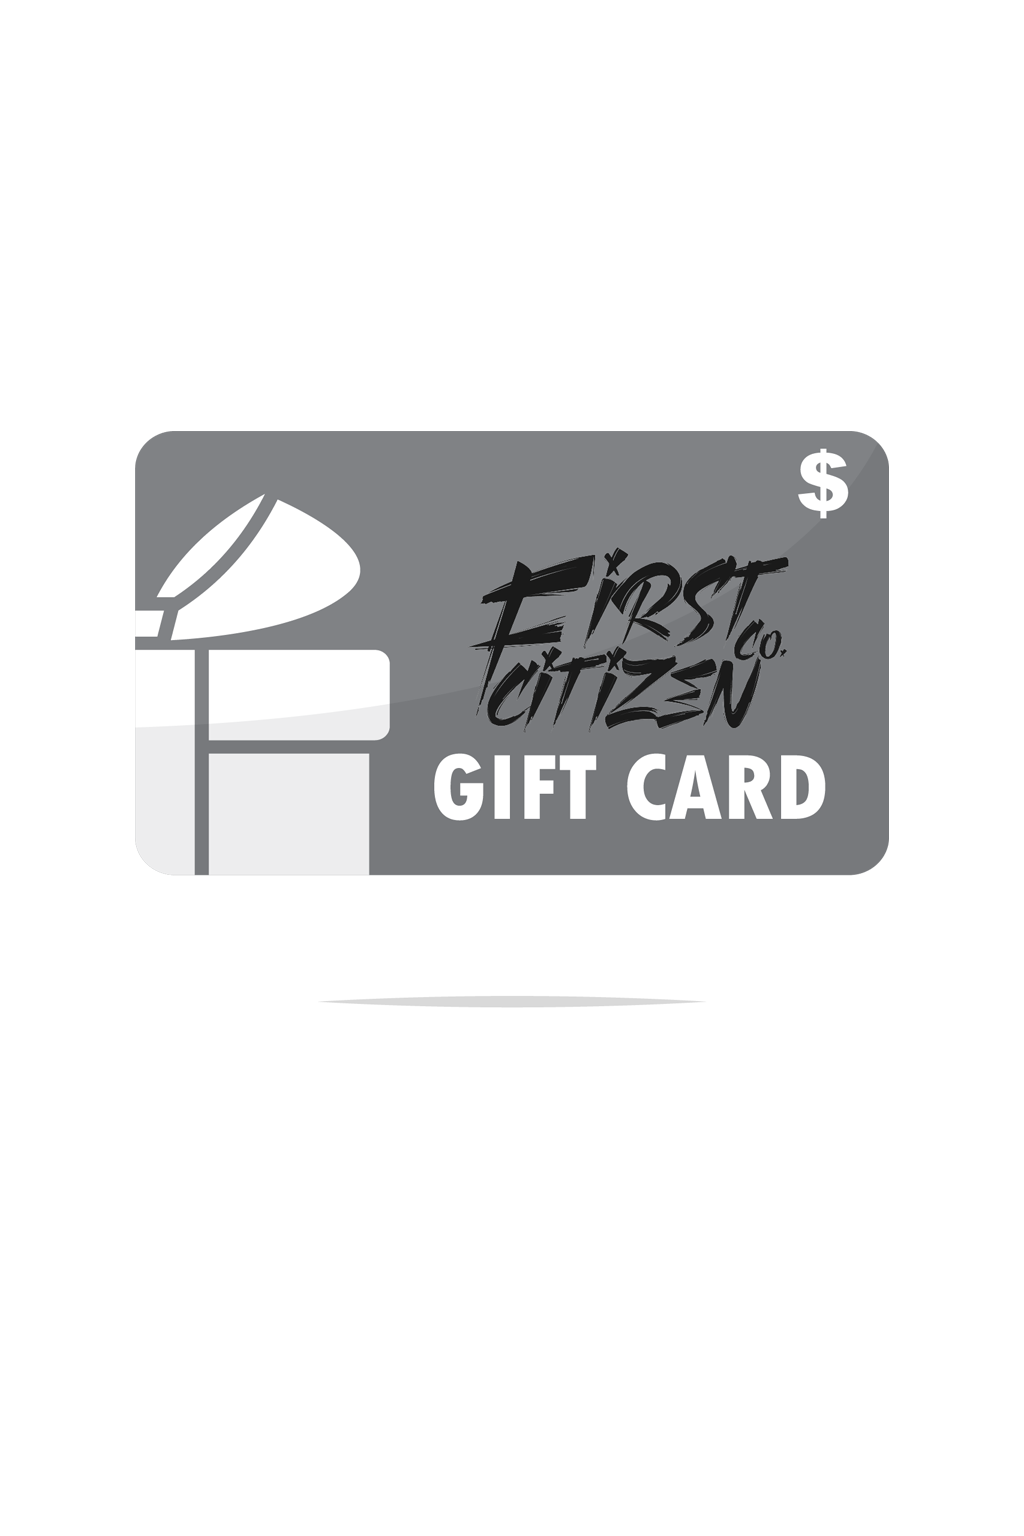 First Citizen Gift Card